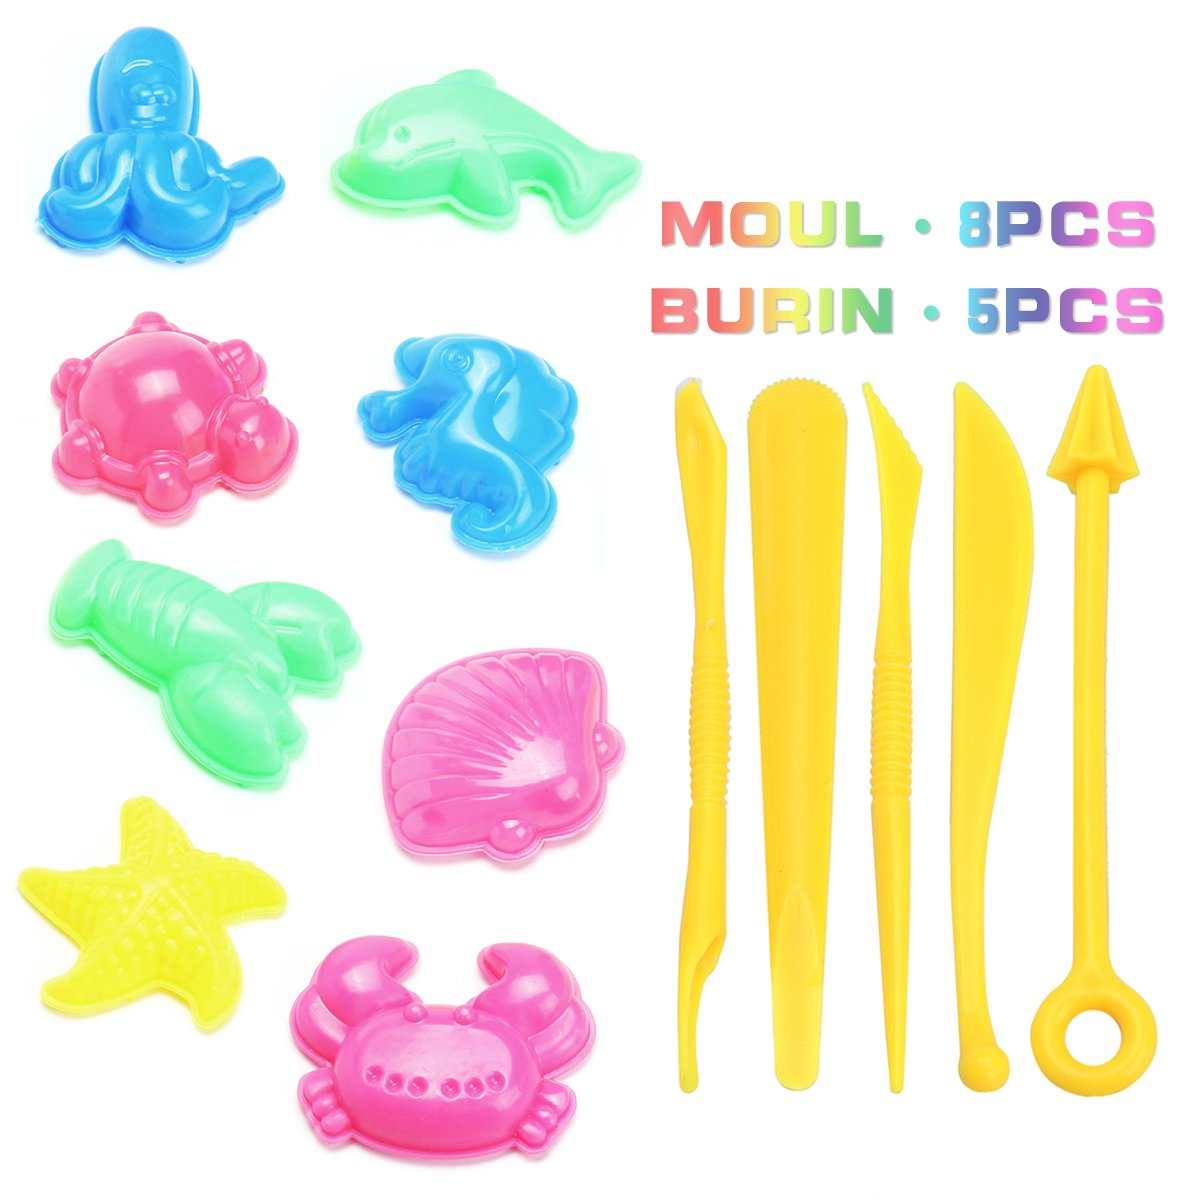 FUNTOK Sand with Molds and Tools Kit Magic Amazing Space Play Sand Colorful Sand Set Kid DIY Indoor Craft Educational Toy Sculpts Castle Architecture Set kids Molding Sand Chamnwii